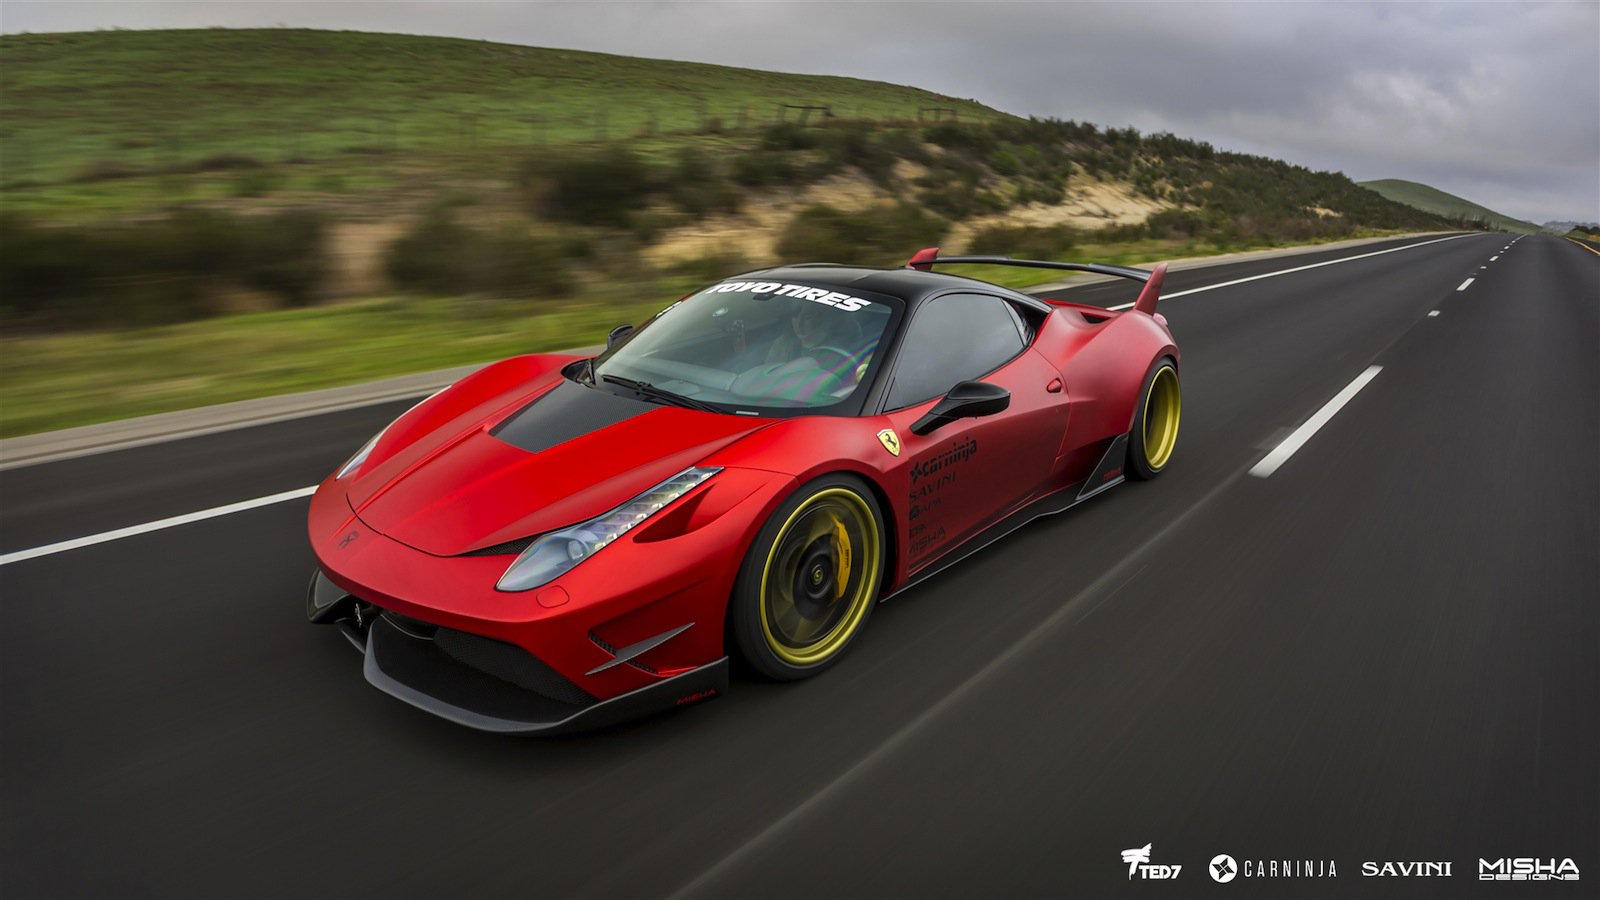 ferrari italia widebody. Ferrari 458 Italia With Misha Designs Bodykit Looks Like A Mini-Hypercar | Carscoops Widebody